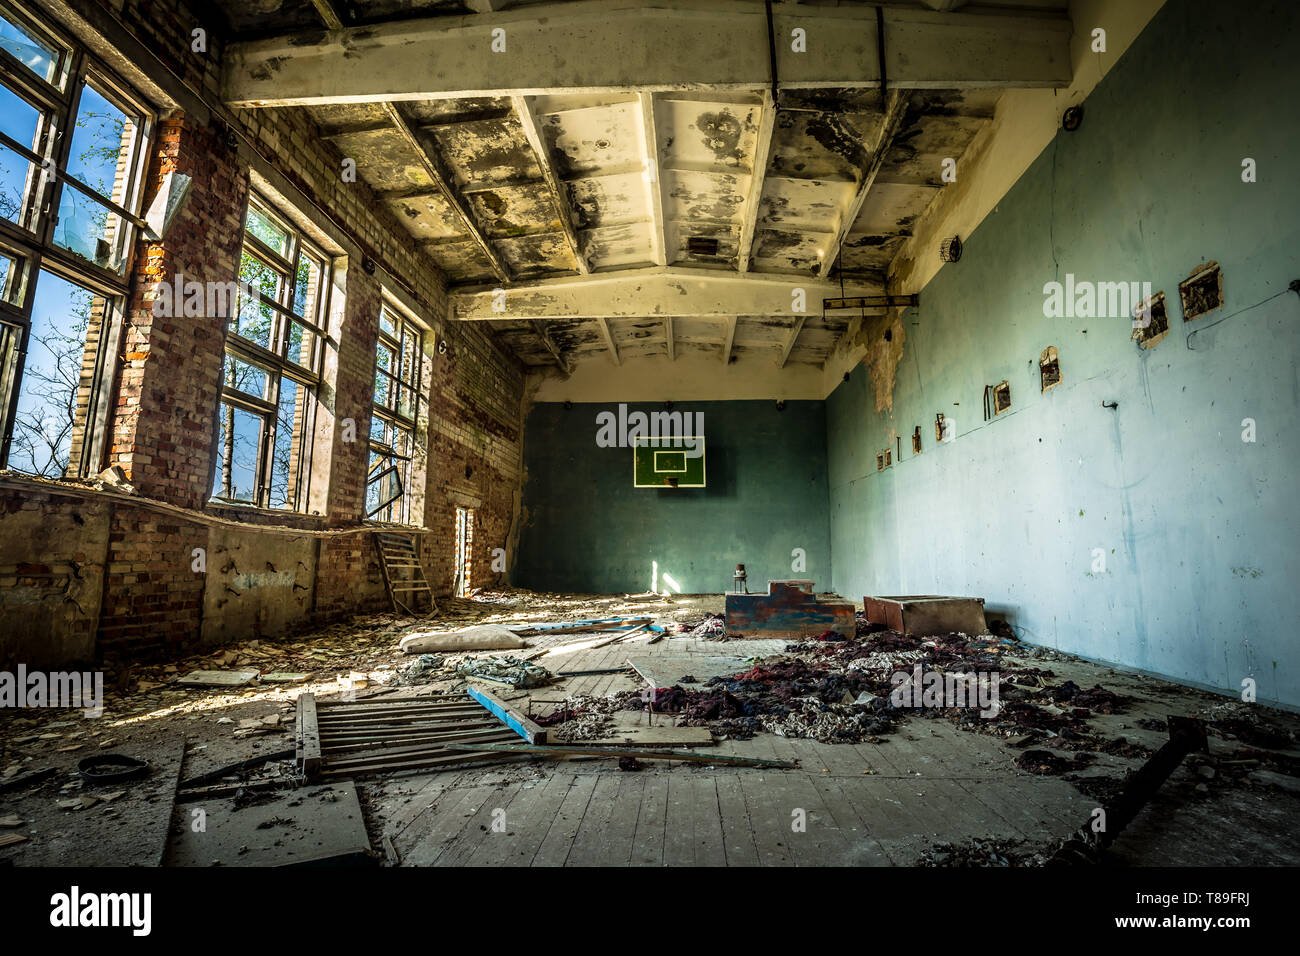 Sports hall in an abandoned school in Belarus Chernobyl exclusion zone, recently opened for the public from april 2019. - Stock Image